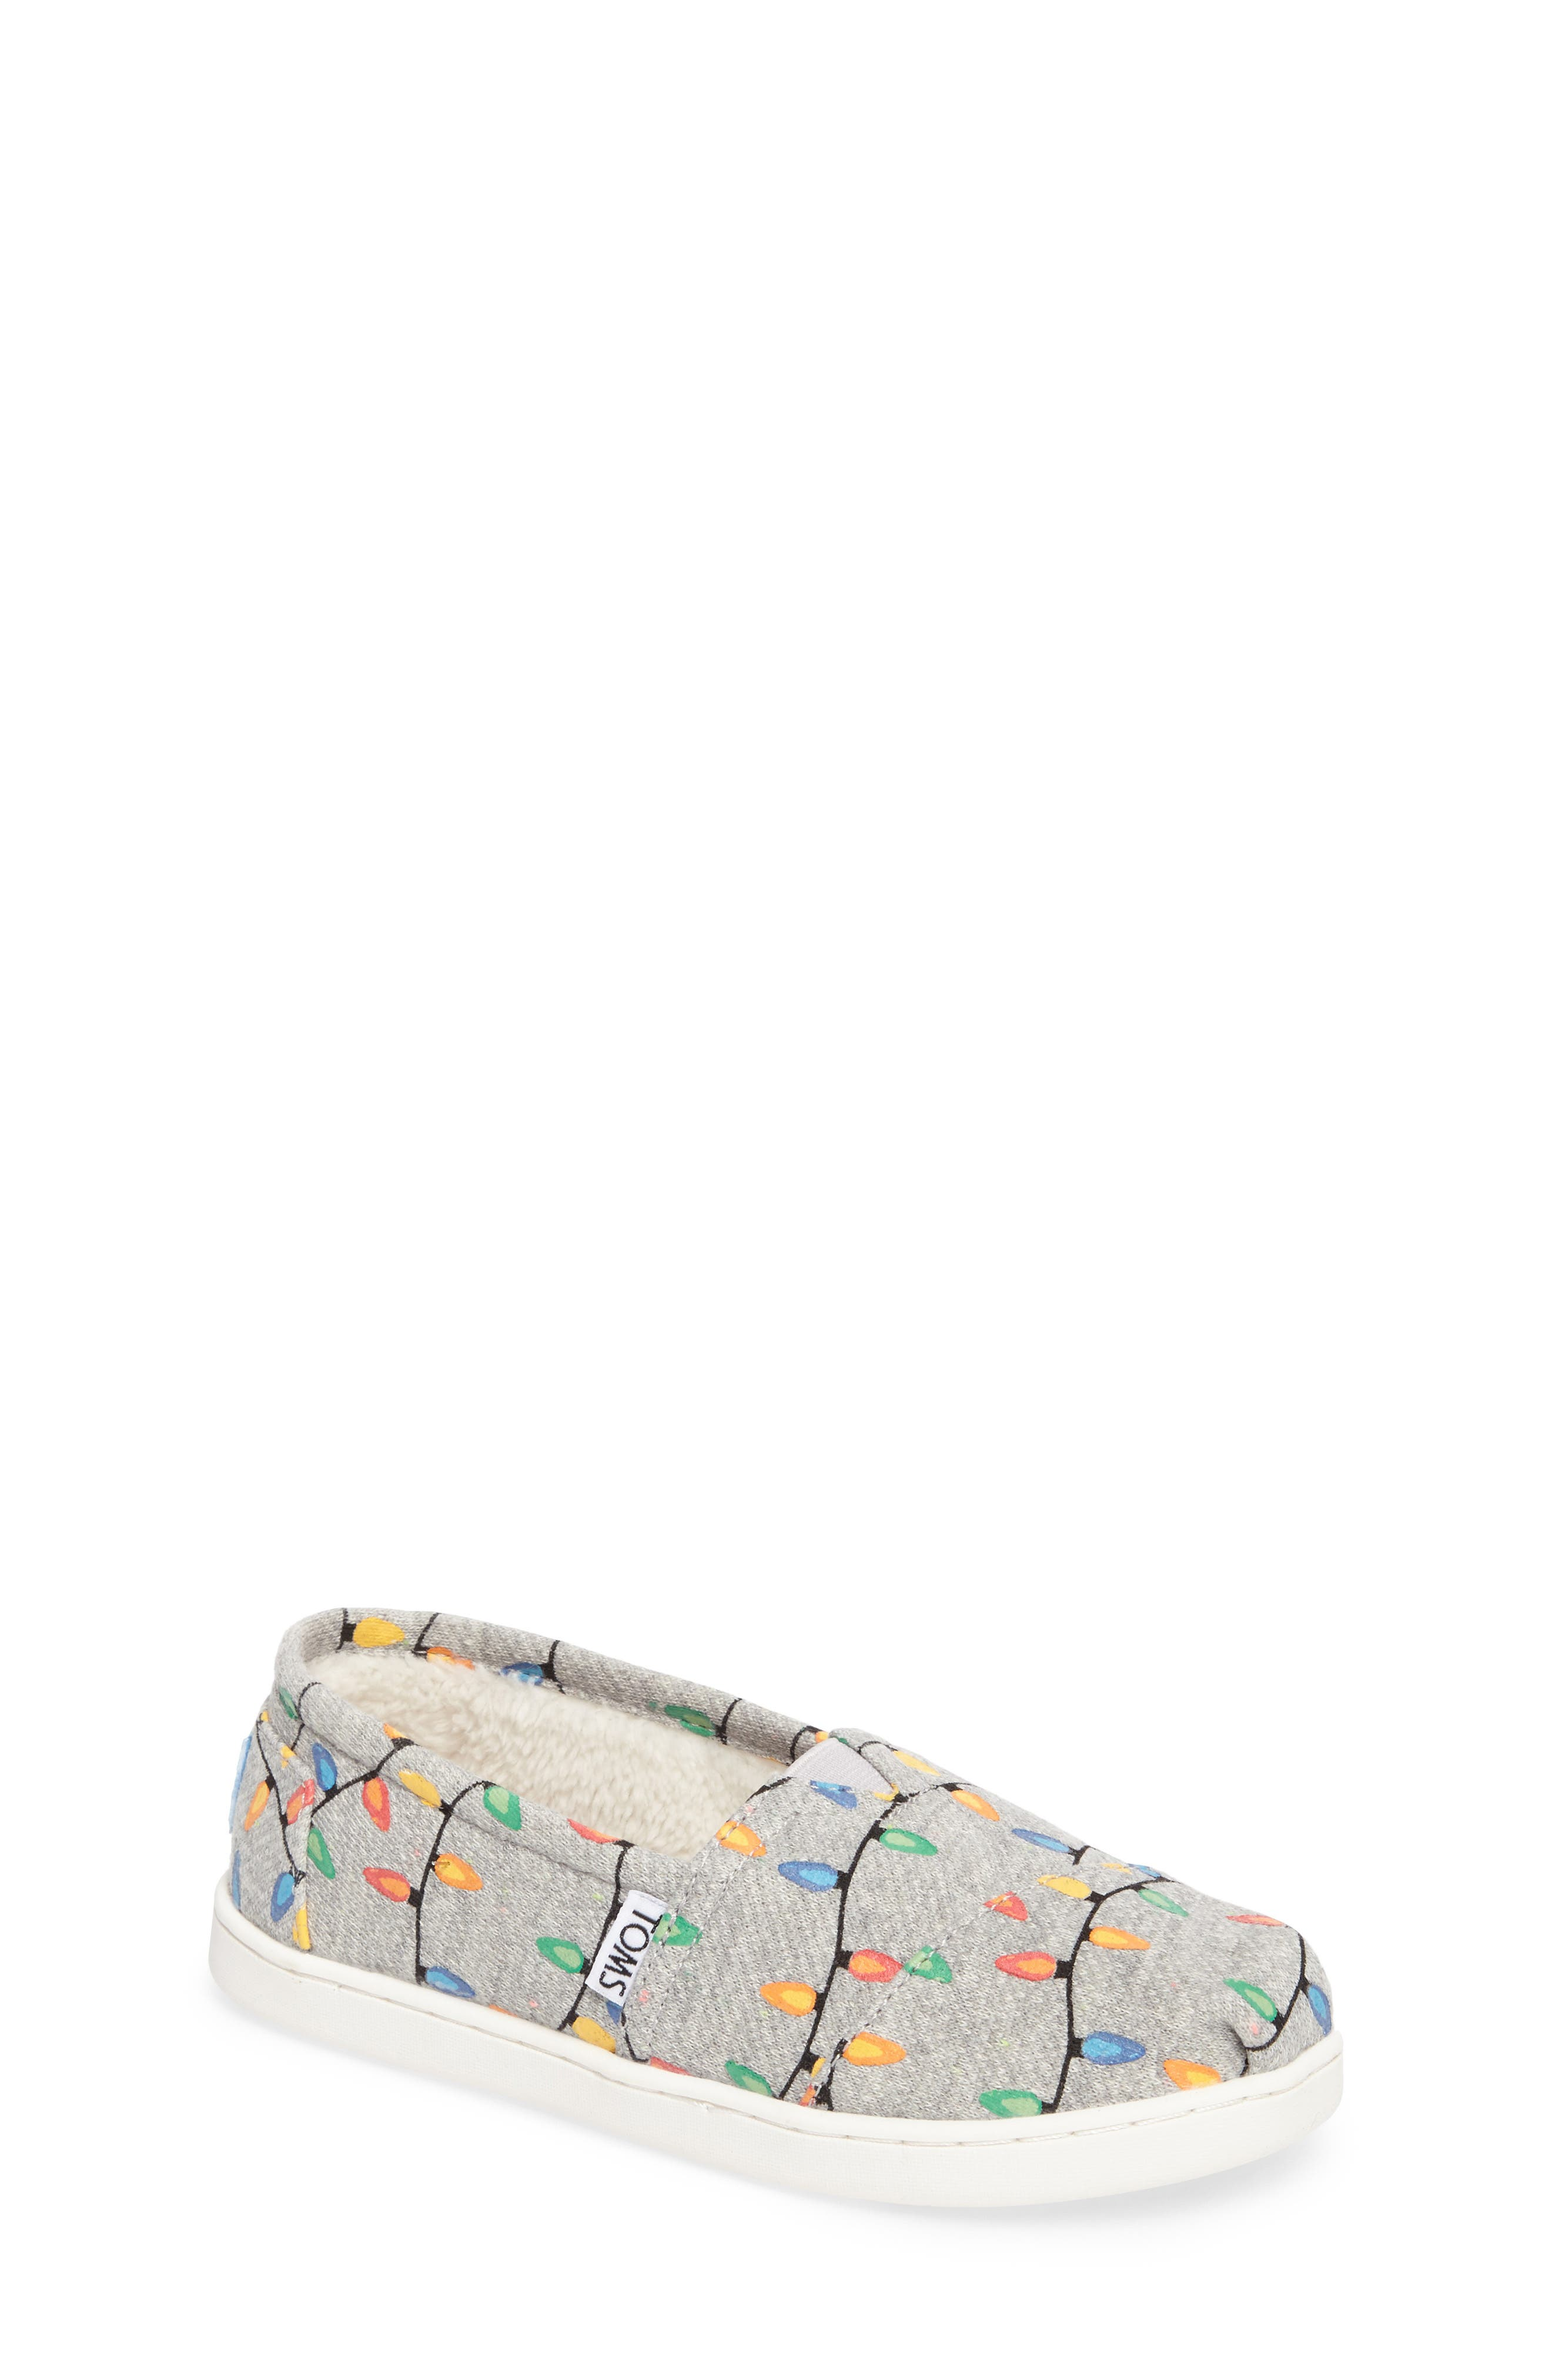 TOMS Classic Glow in the Dark Christmas